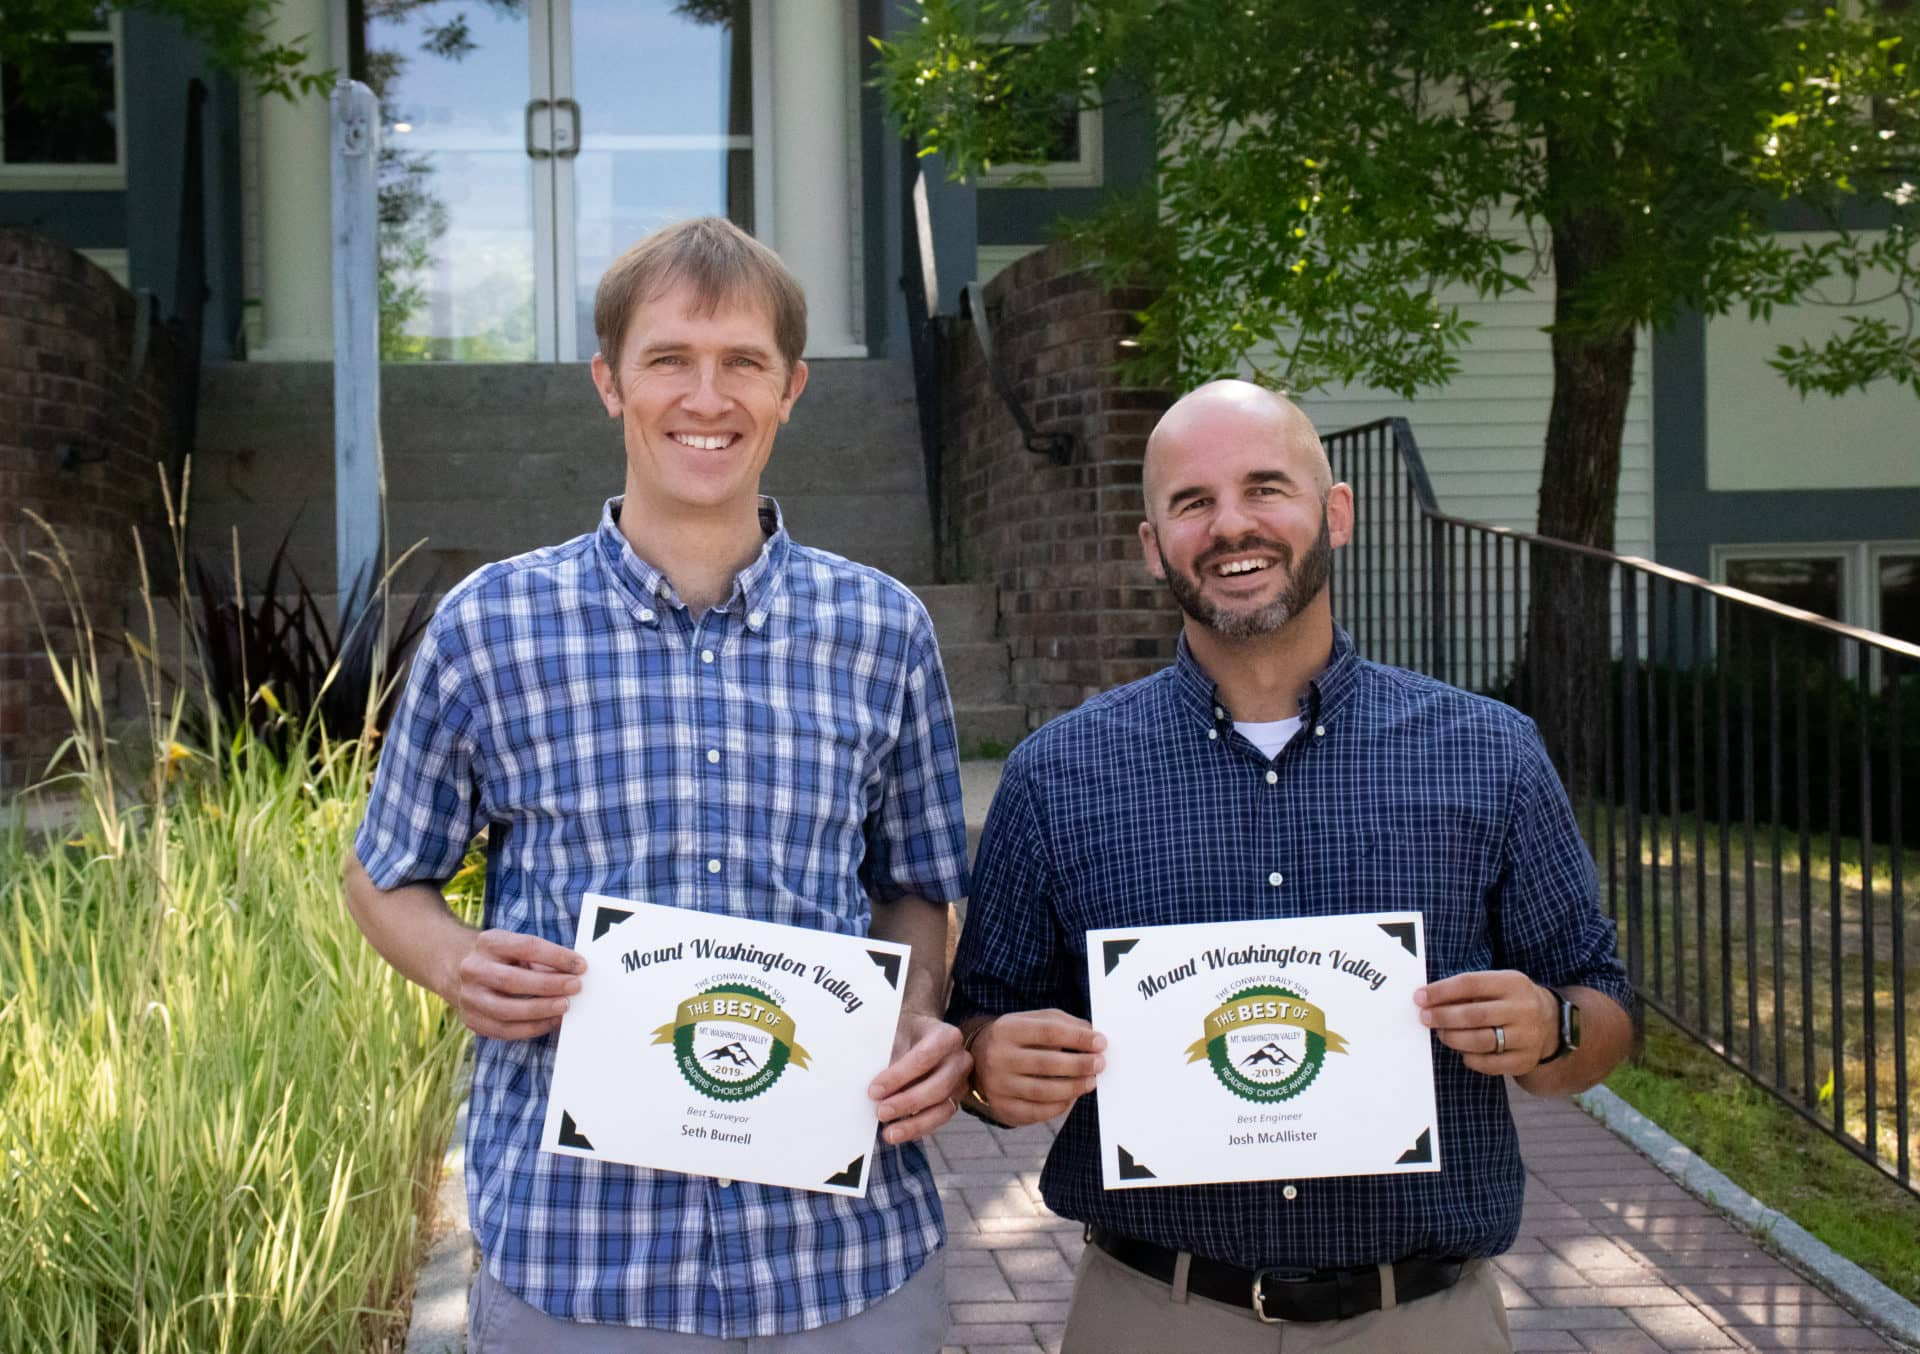 Seth Burnell (left) and Josh McAllister (right) awarded during the 2019 MWV Best of the Valley.